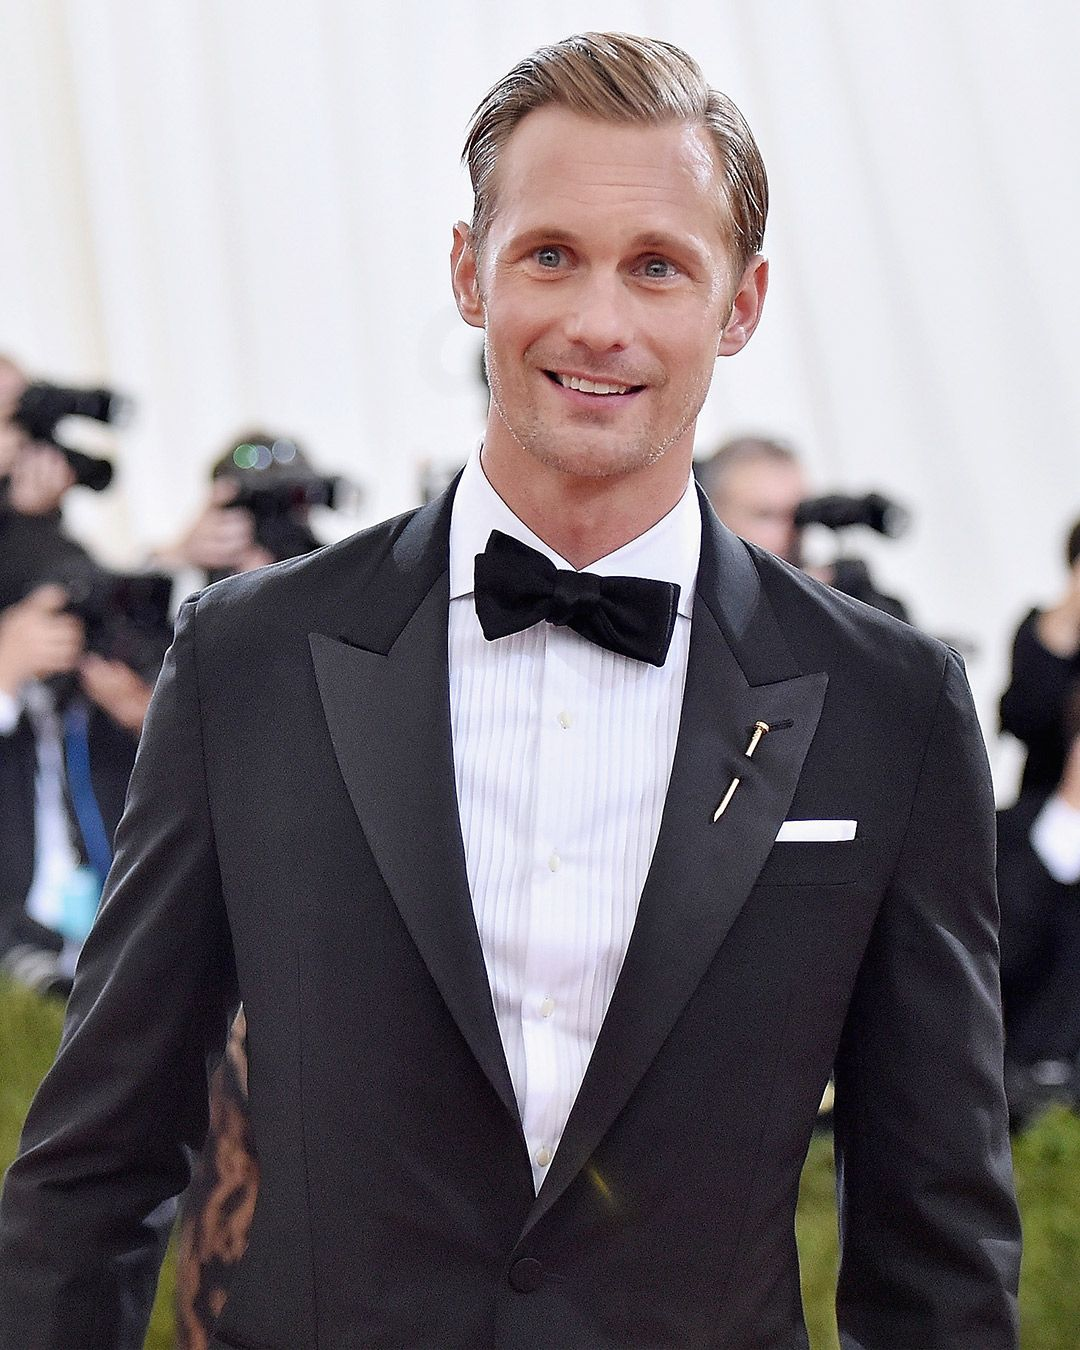 Alexander Skarsgård The Swedish hottie played husband to Kidman on BLL . You were captivated by his intense demeanor and also completely terrified of him.